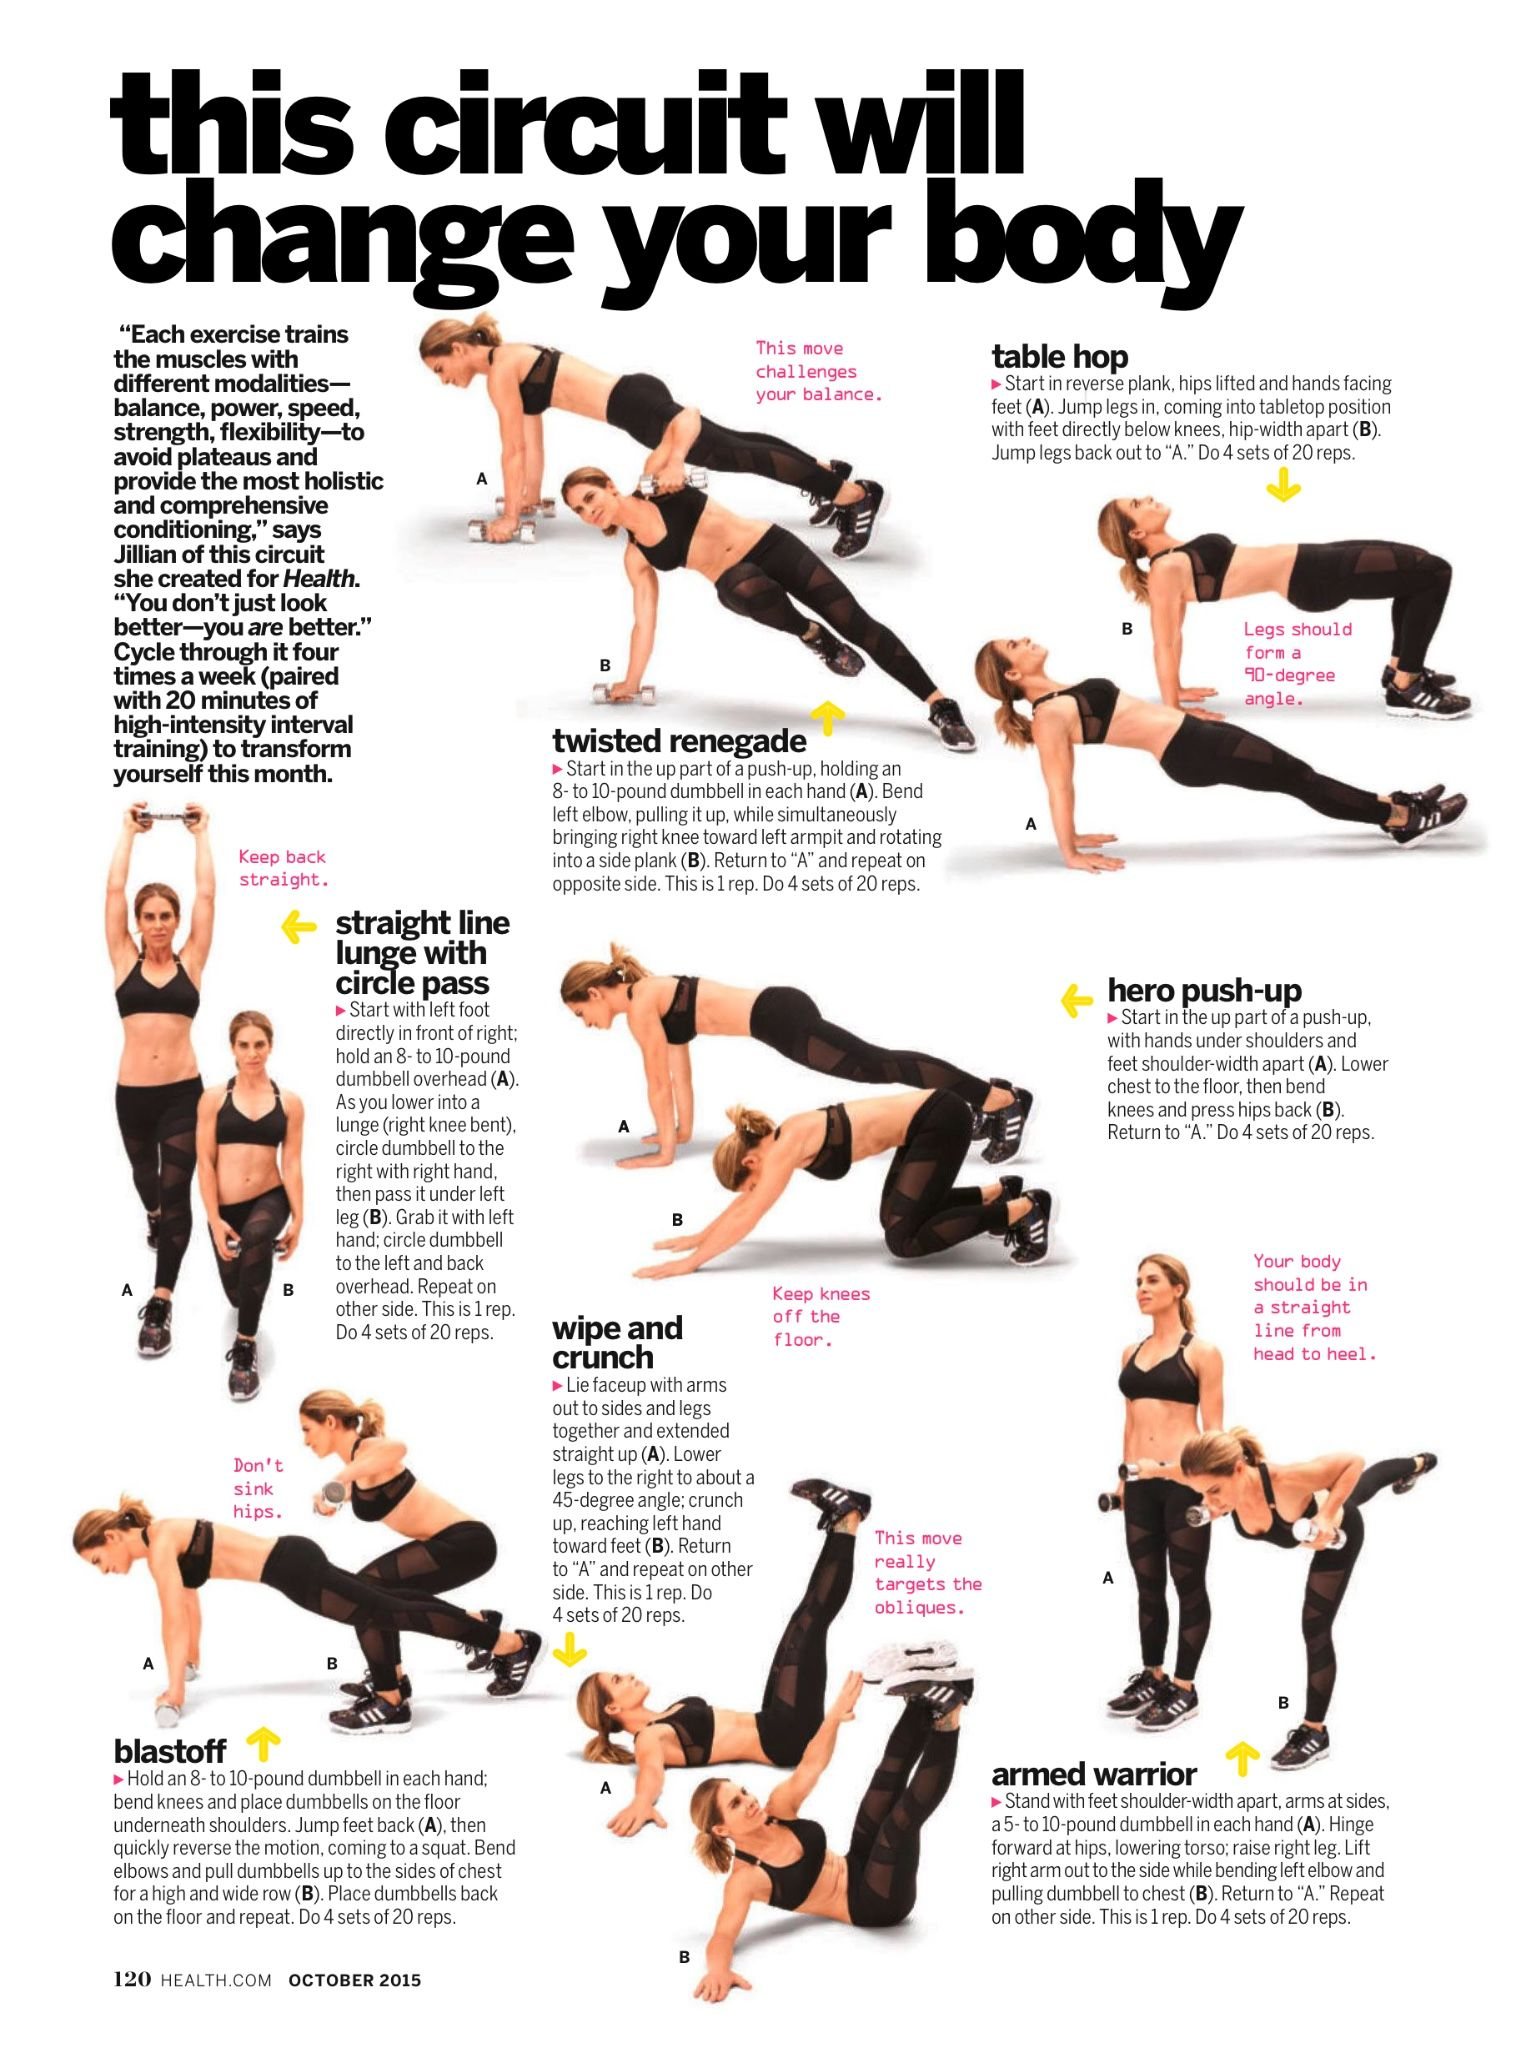 Pin By China Catt On You Better Work Pinterest Workout Full Body Circuit With Weights Workouts Exercises And Fitness Plan